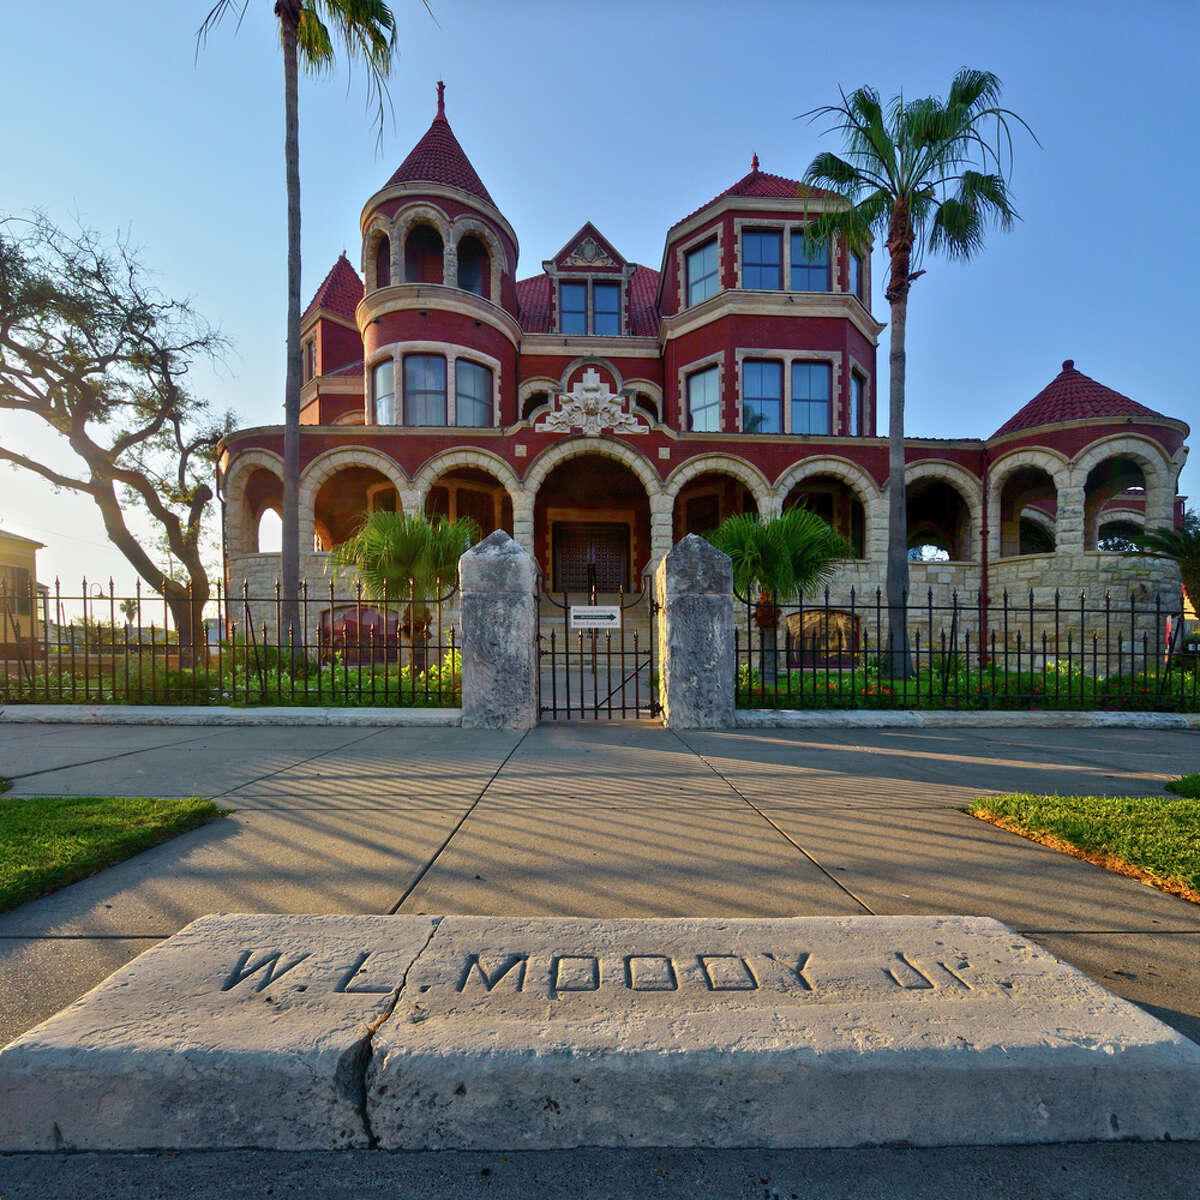 Start at the awe-inspiring 1895 Moody Mansion, a sprawling 28,000-square-foot, four-story mansion once home to one of the state's most prominent families. The Moody Mansion is just one of many eye-catching historic homes and structures in Galveston.